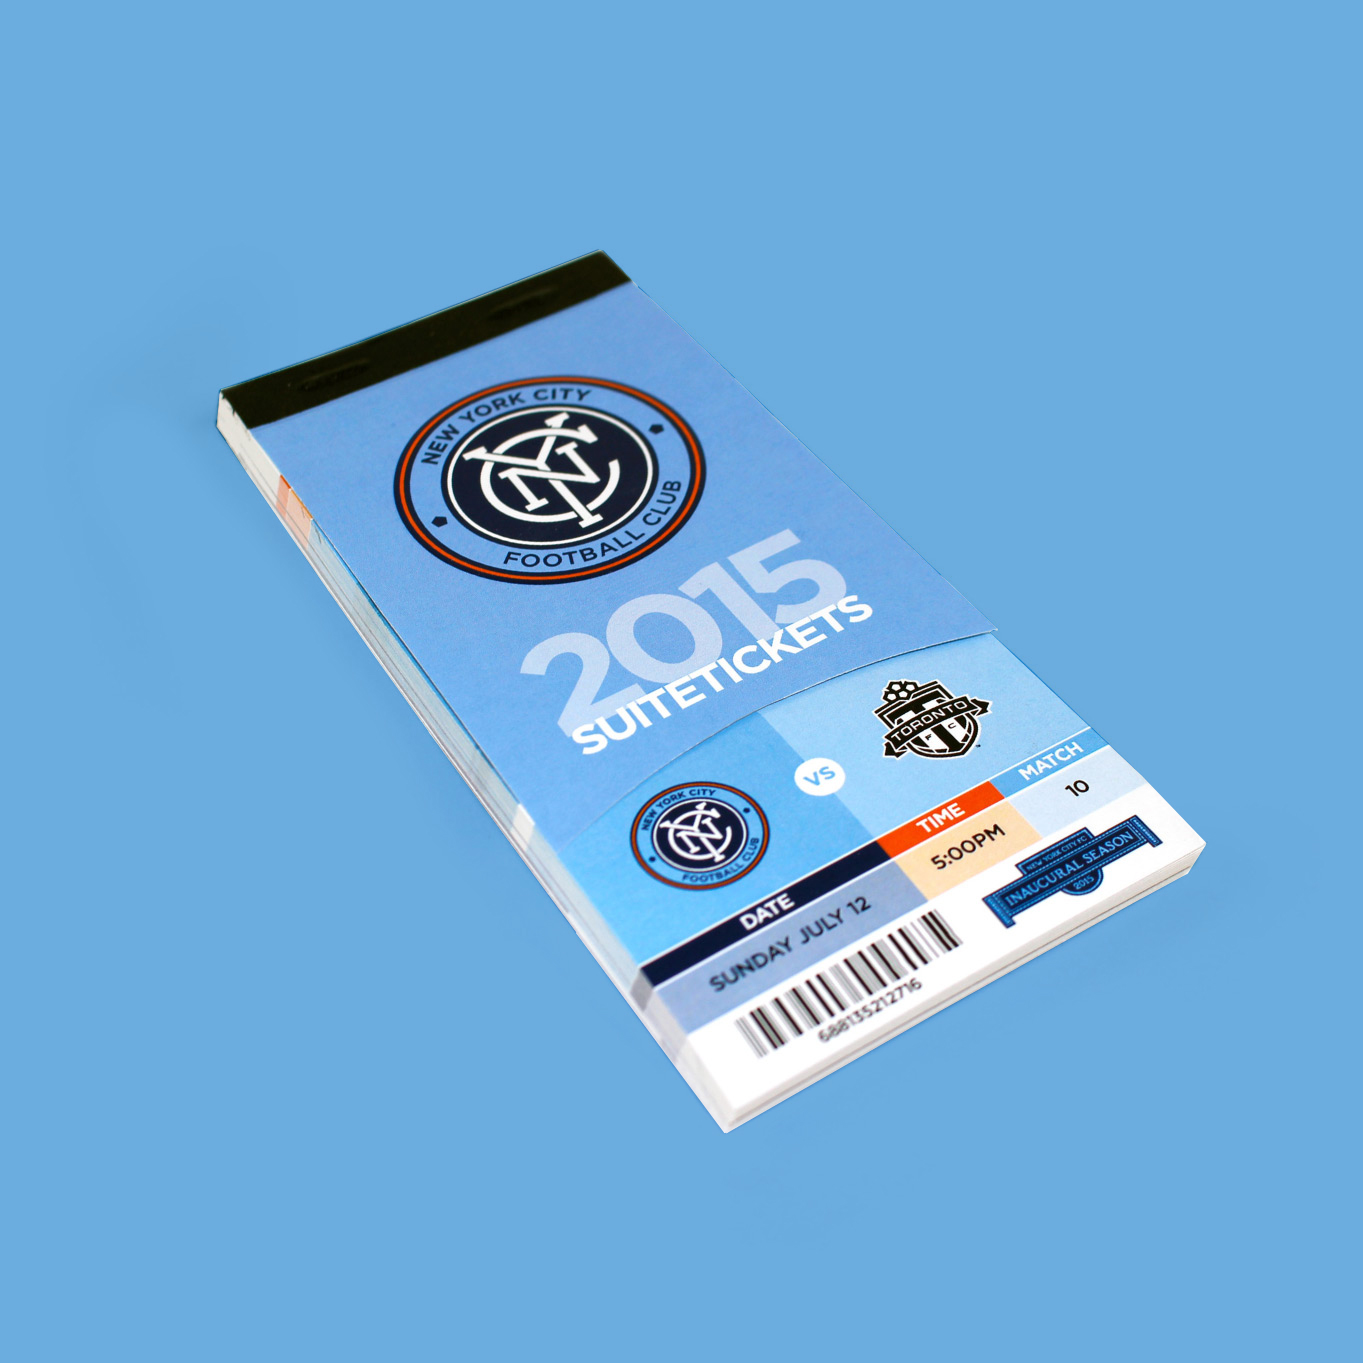 New York City FC Season Tickets 2015, NYCFC